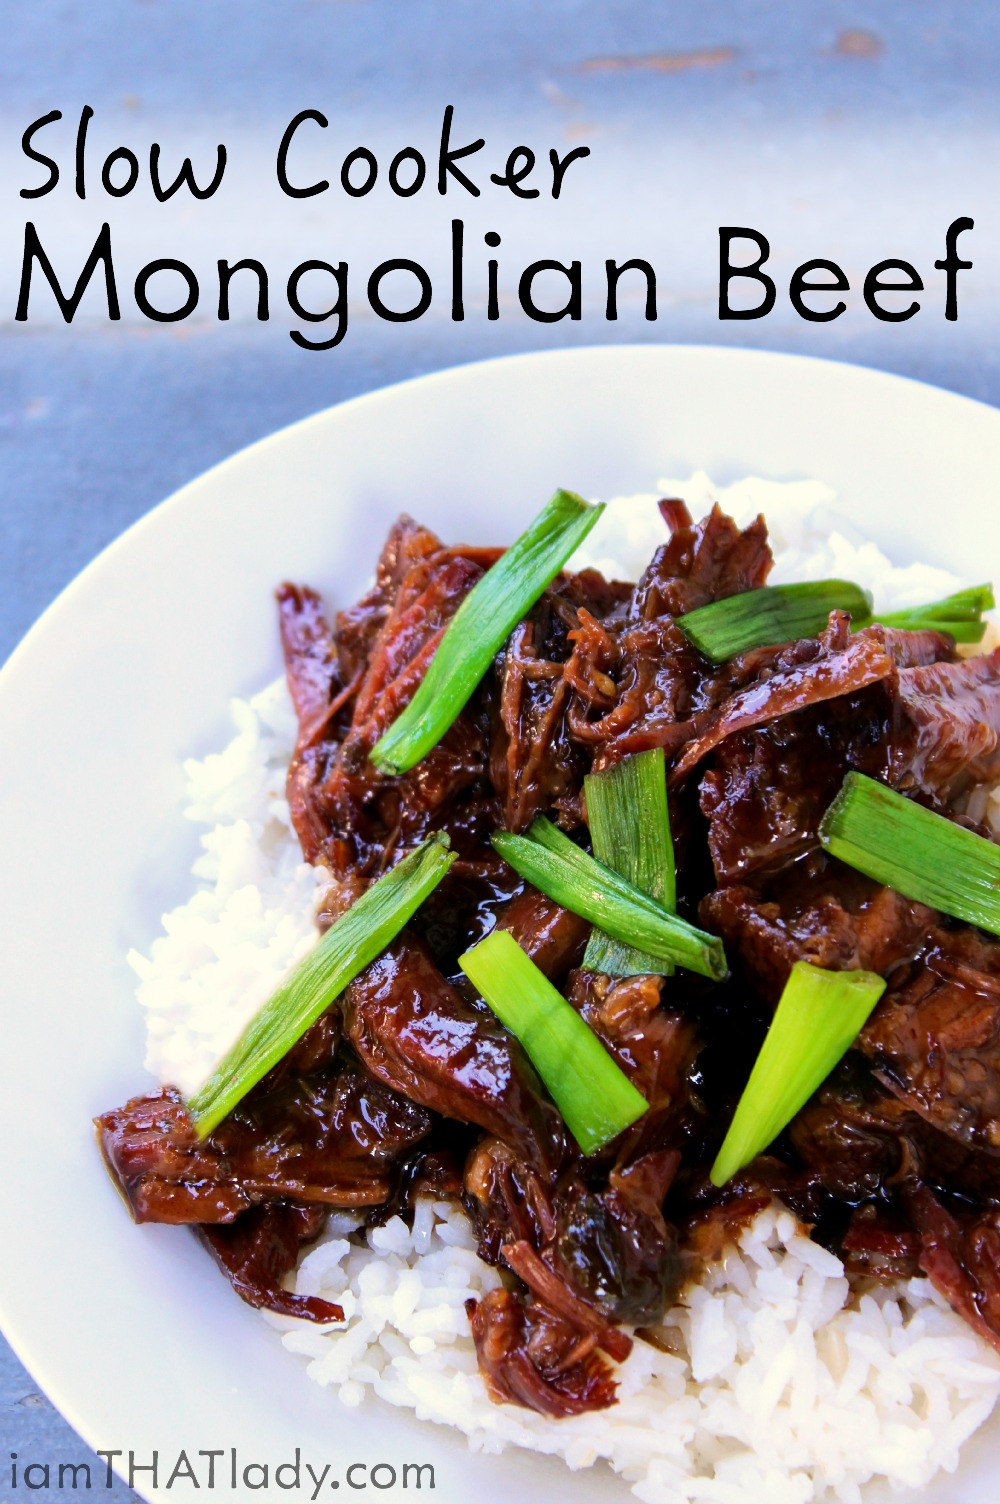 Slow cooker mongolian beef lauren greutman pf changs mongolian beef is sooo good there are a lot of good copycat recipes forumfinder Choice Image